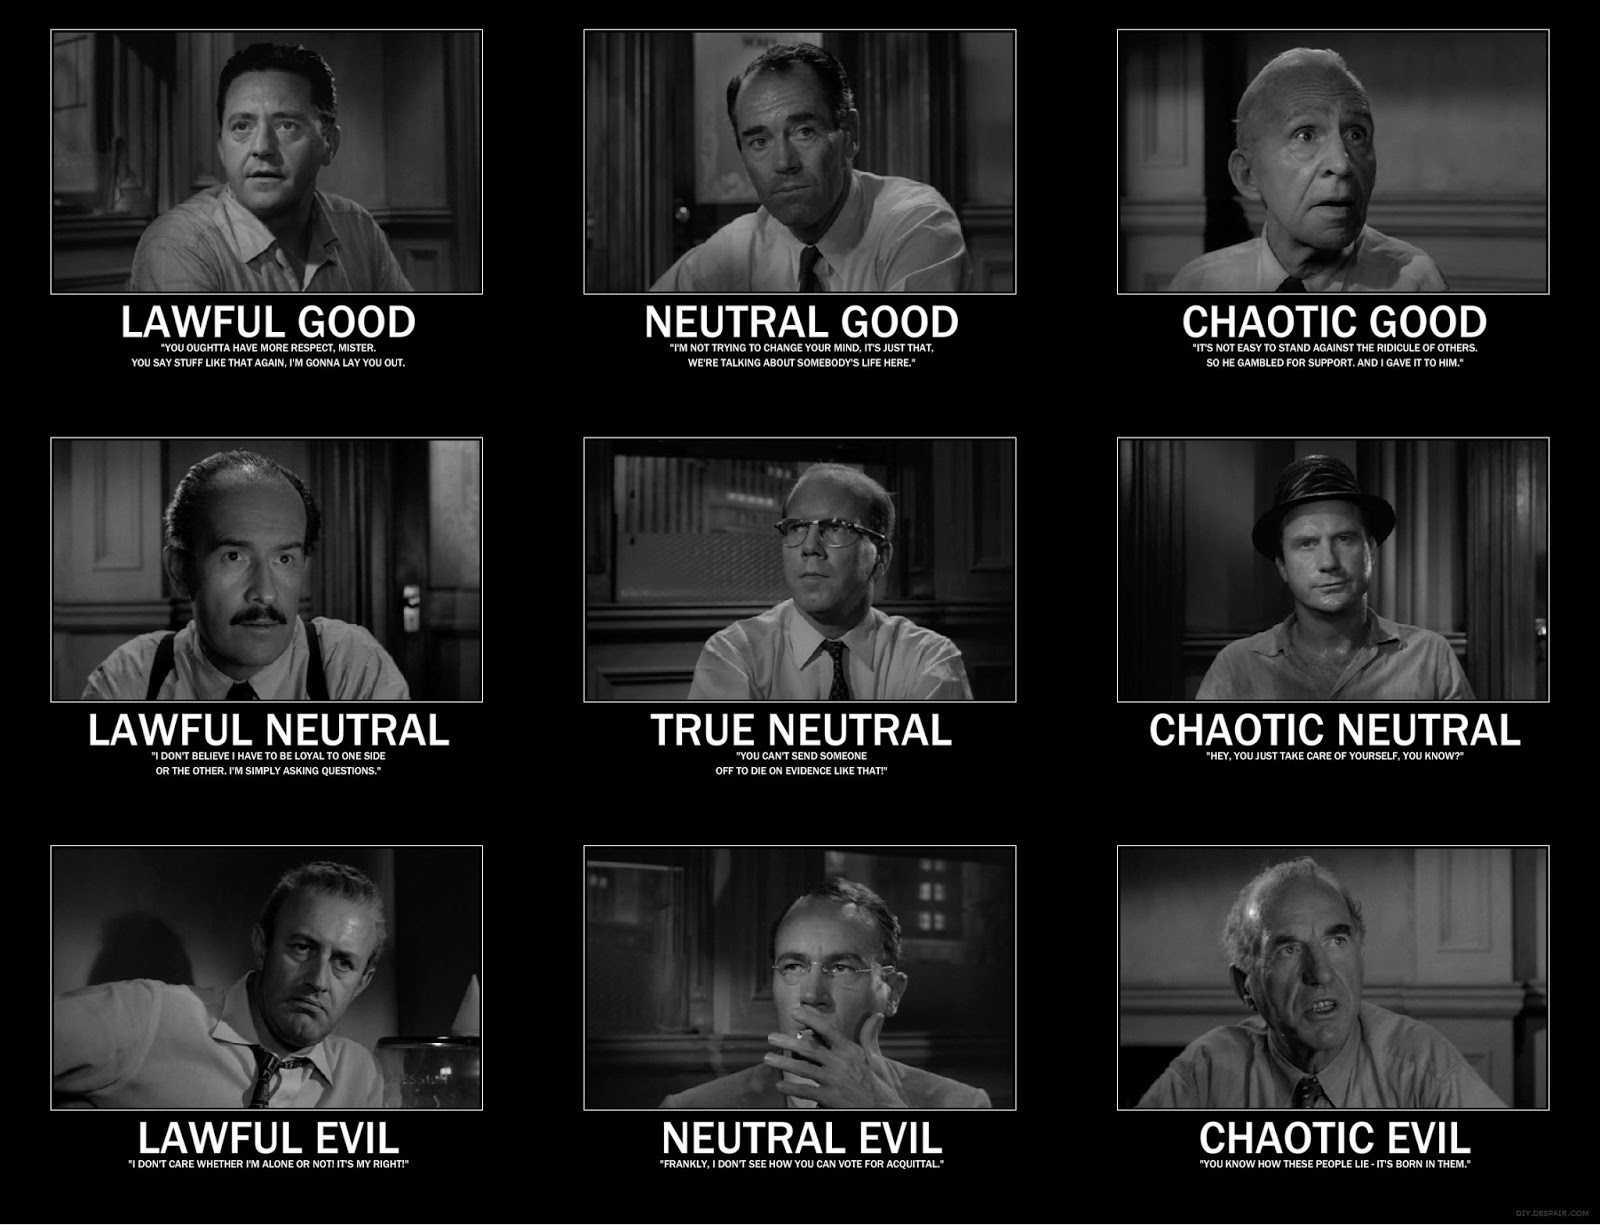 phil s pointless film blog  an good idea of how well some of these characters fit archetypes